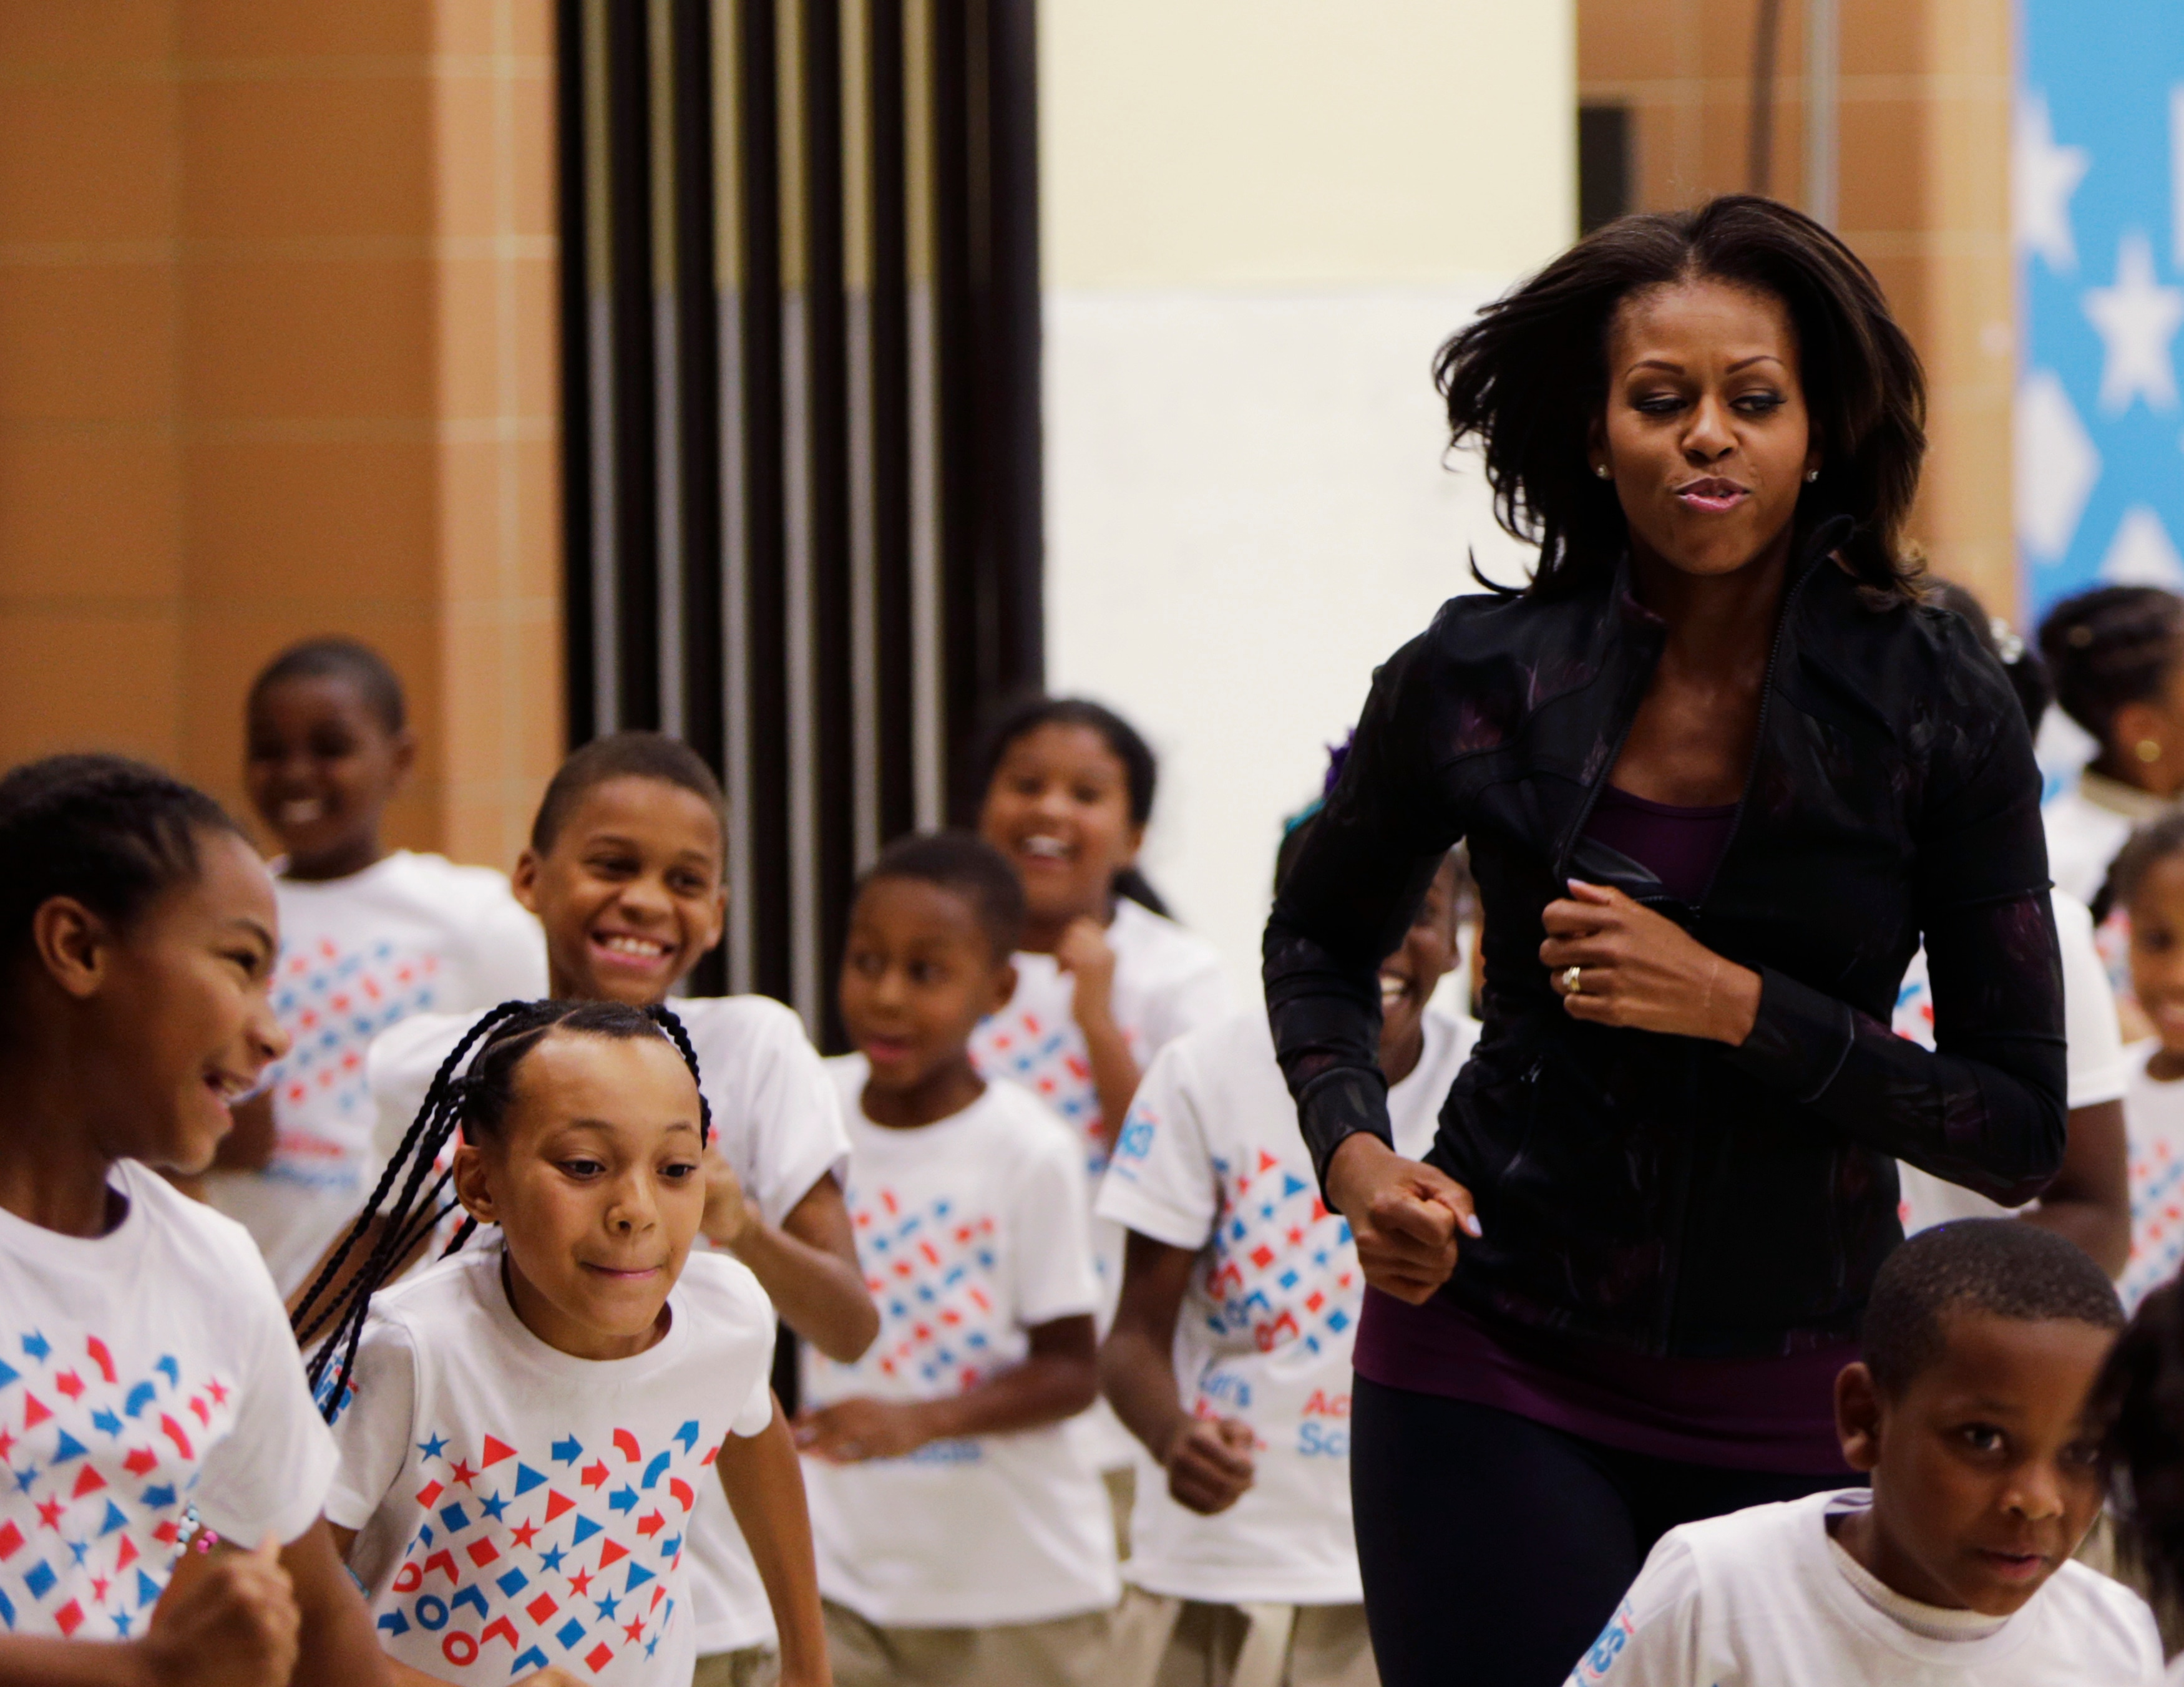 Physical Activity May Help Kids Do Better In School